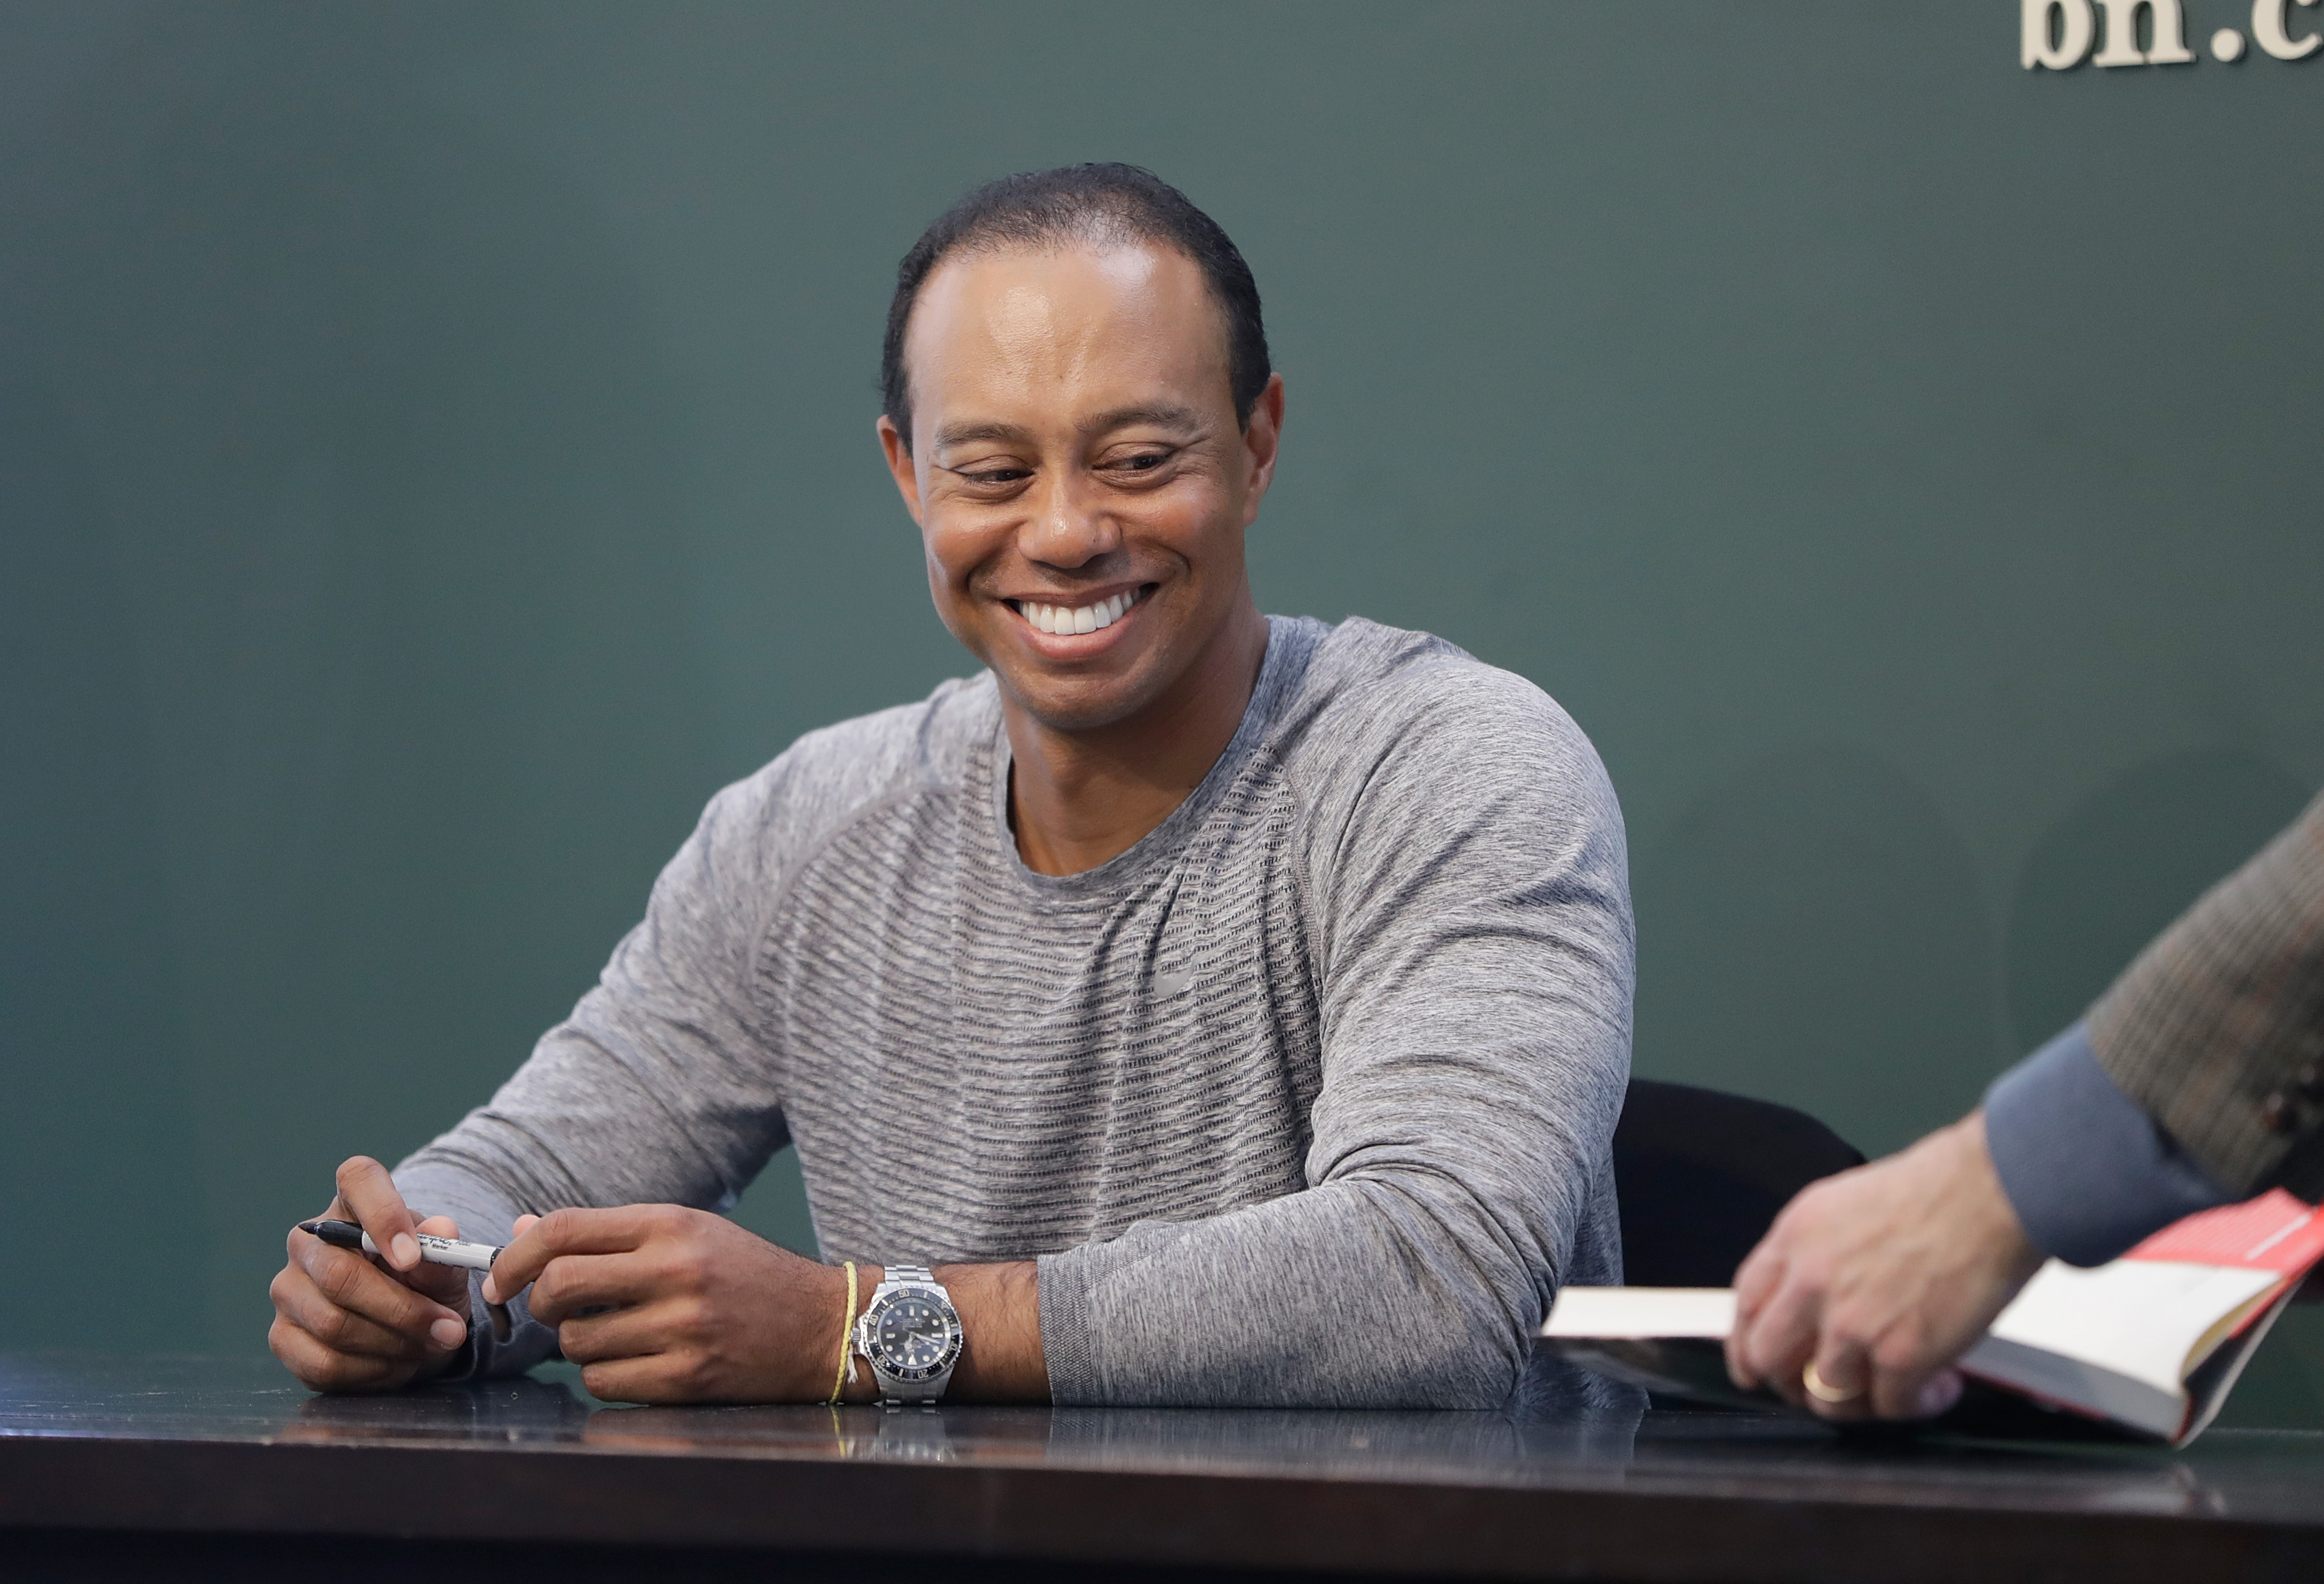 Tiger Woods Signs Copies Of His New Book 'The 1997 Masters: My Story'